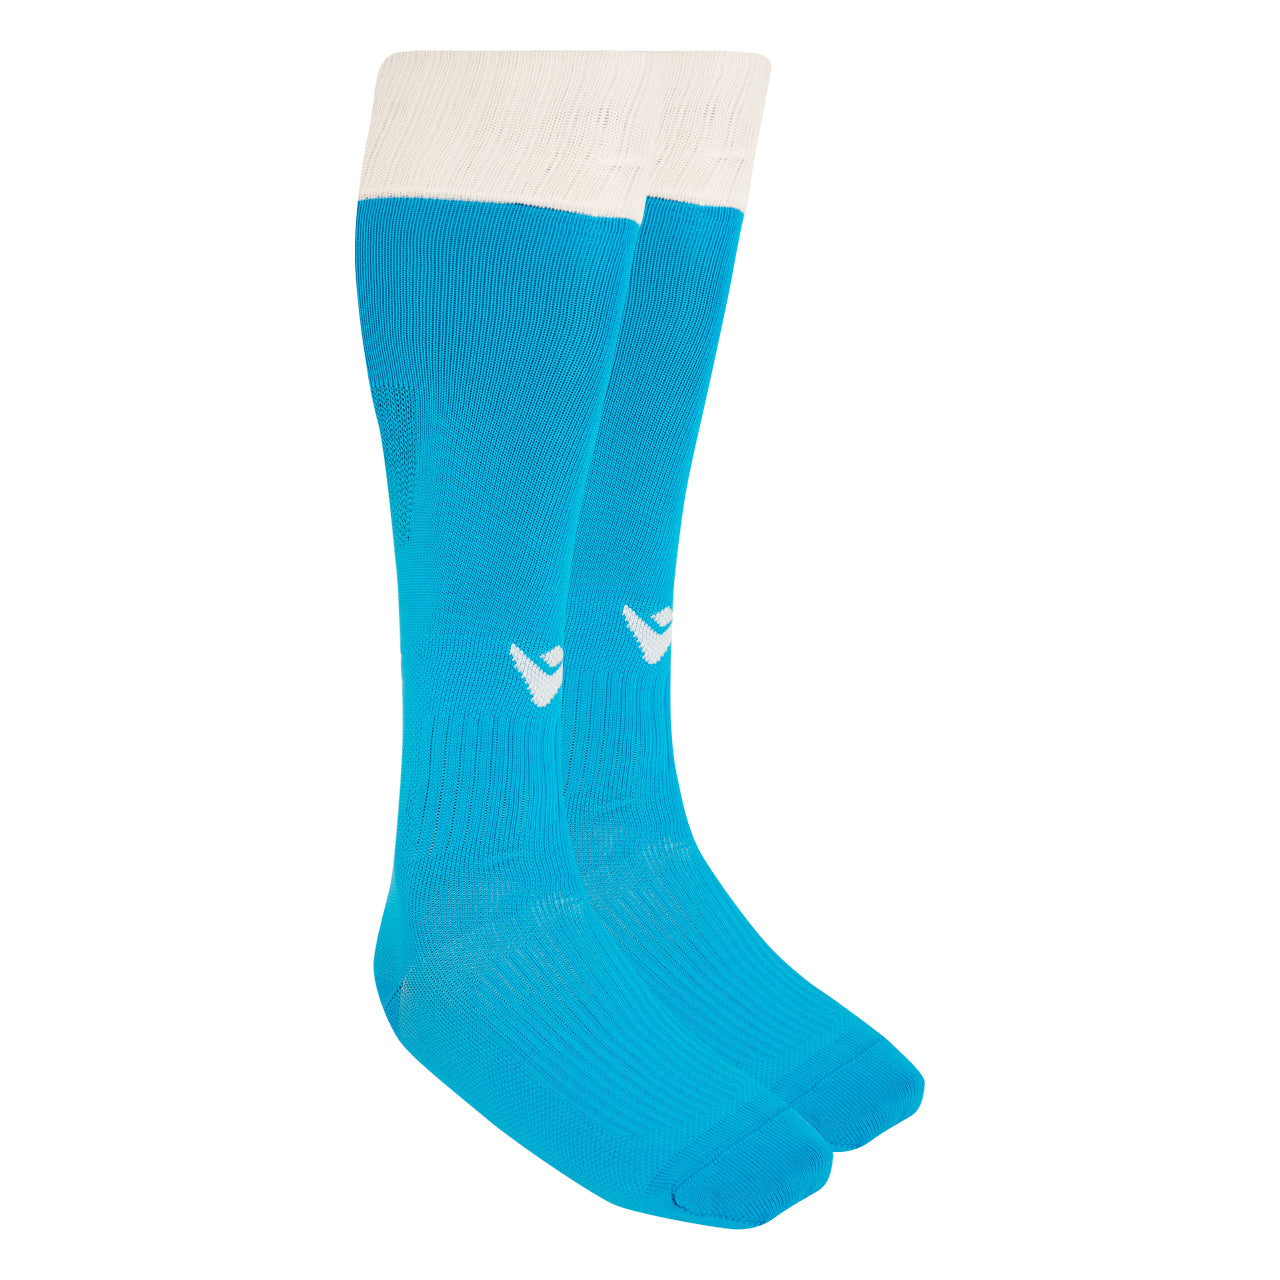 NFFC Mens Blue Goalkeeper Socks 2019/20